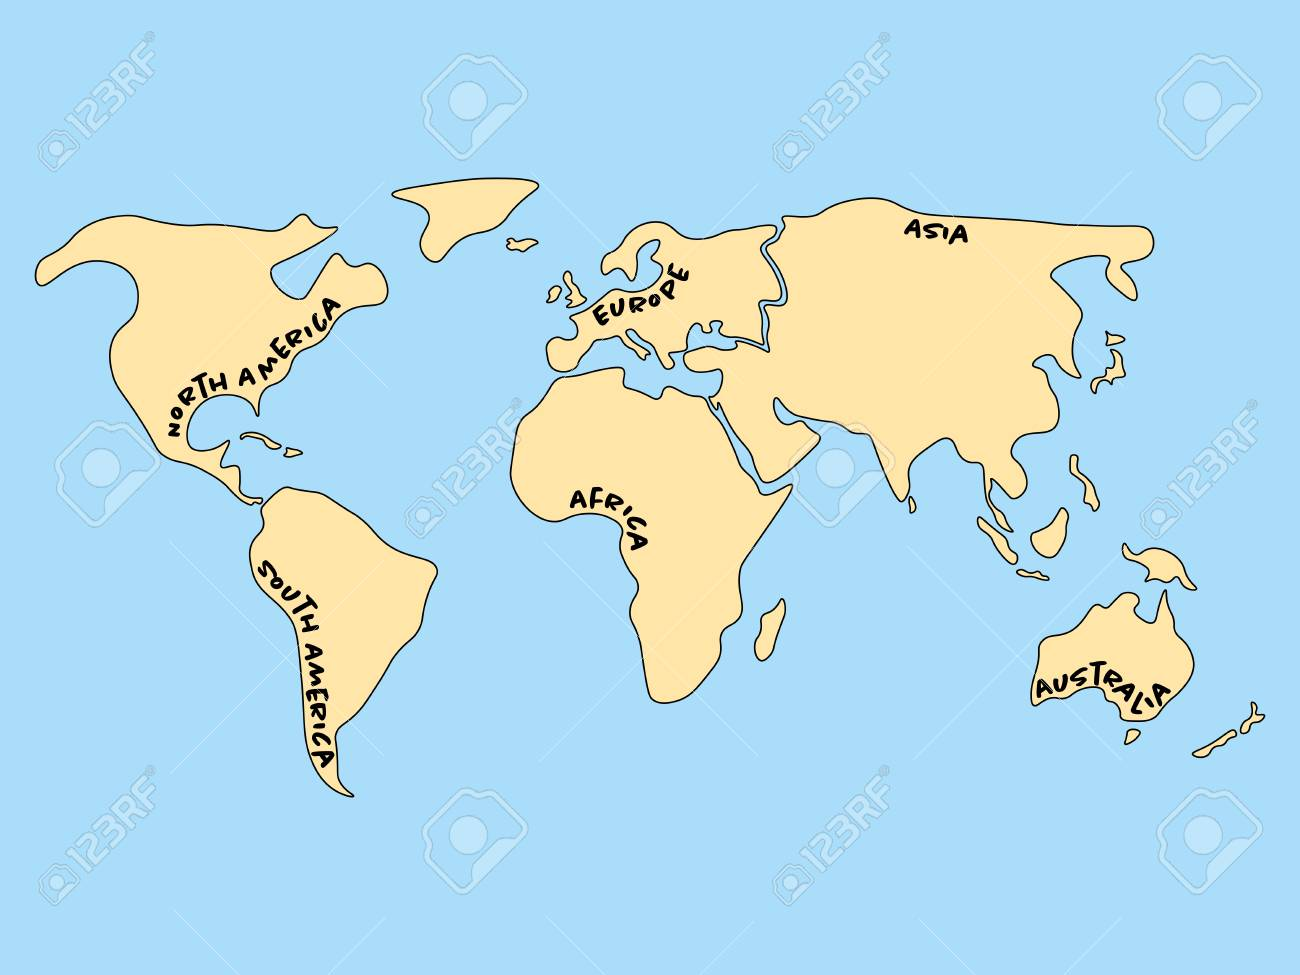 map of the north east region, map of the continent of australia, map of north american countries, map of the north american union, map of the north polar region, map of the north american prairie, drawing of the north american continent, america continent, north and south american continent, map of the north island of new zealand, map of south american continent, map of the north eastern united states, map of southern continent, map of eurasian continent, map of the north america, map of the north africa, map of the african continent, map of european continent, map of the north european plain, on a map of the north american continent